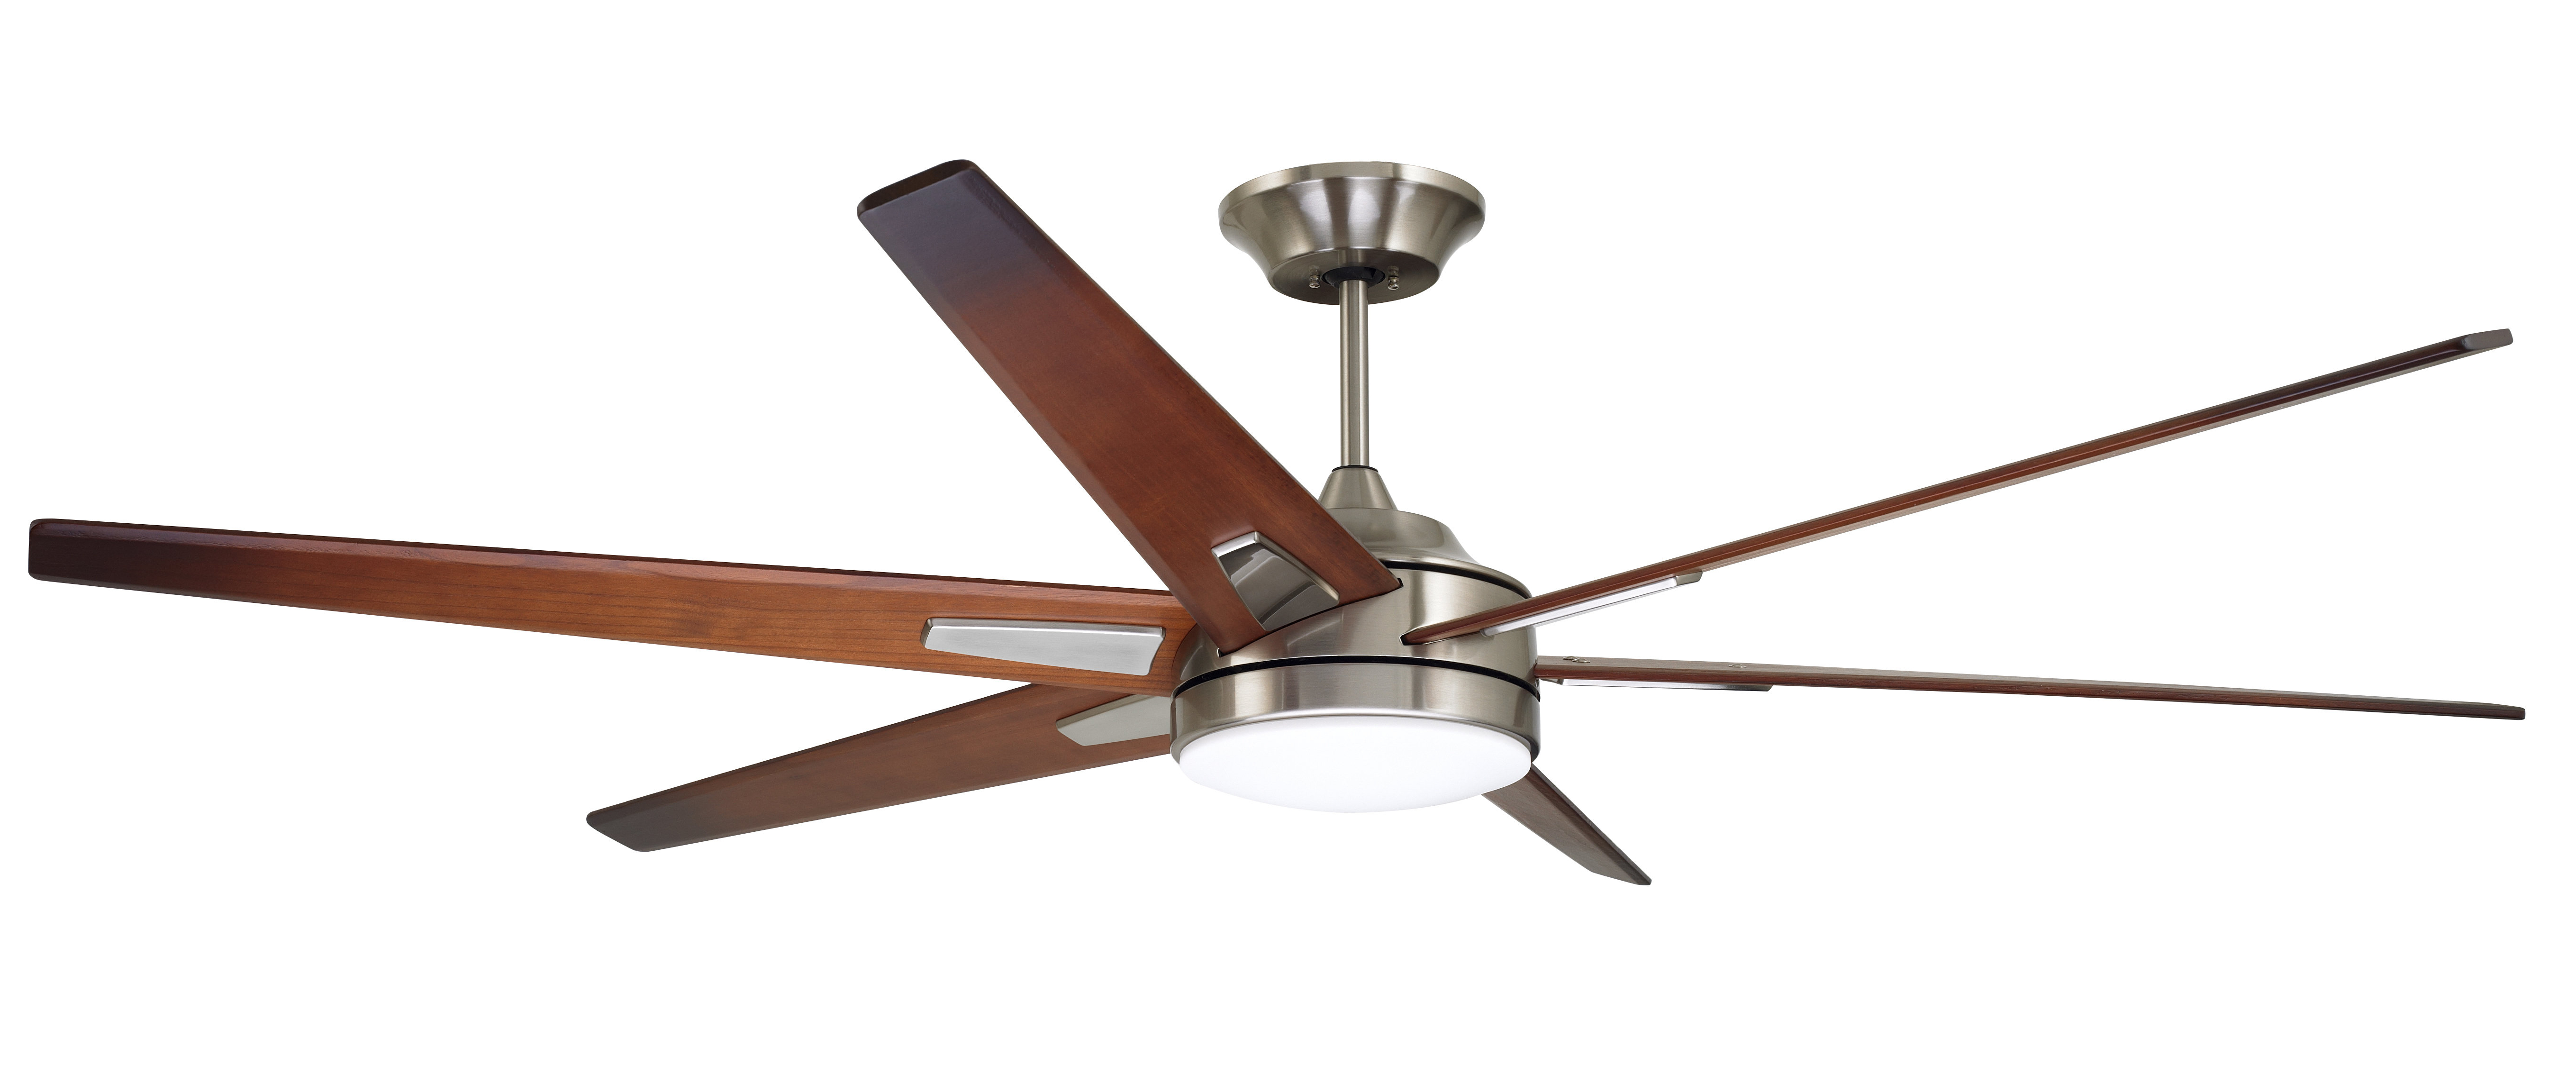 "Newest Cranbrook 4 Blade Ceiling Fans Within 72"" Durst 6 Blade Led Ceiling Fan, Light Kit Included (View 14 of 20)"